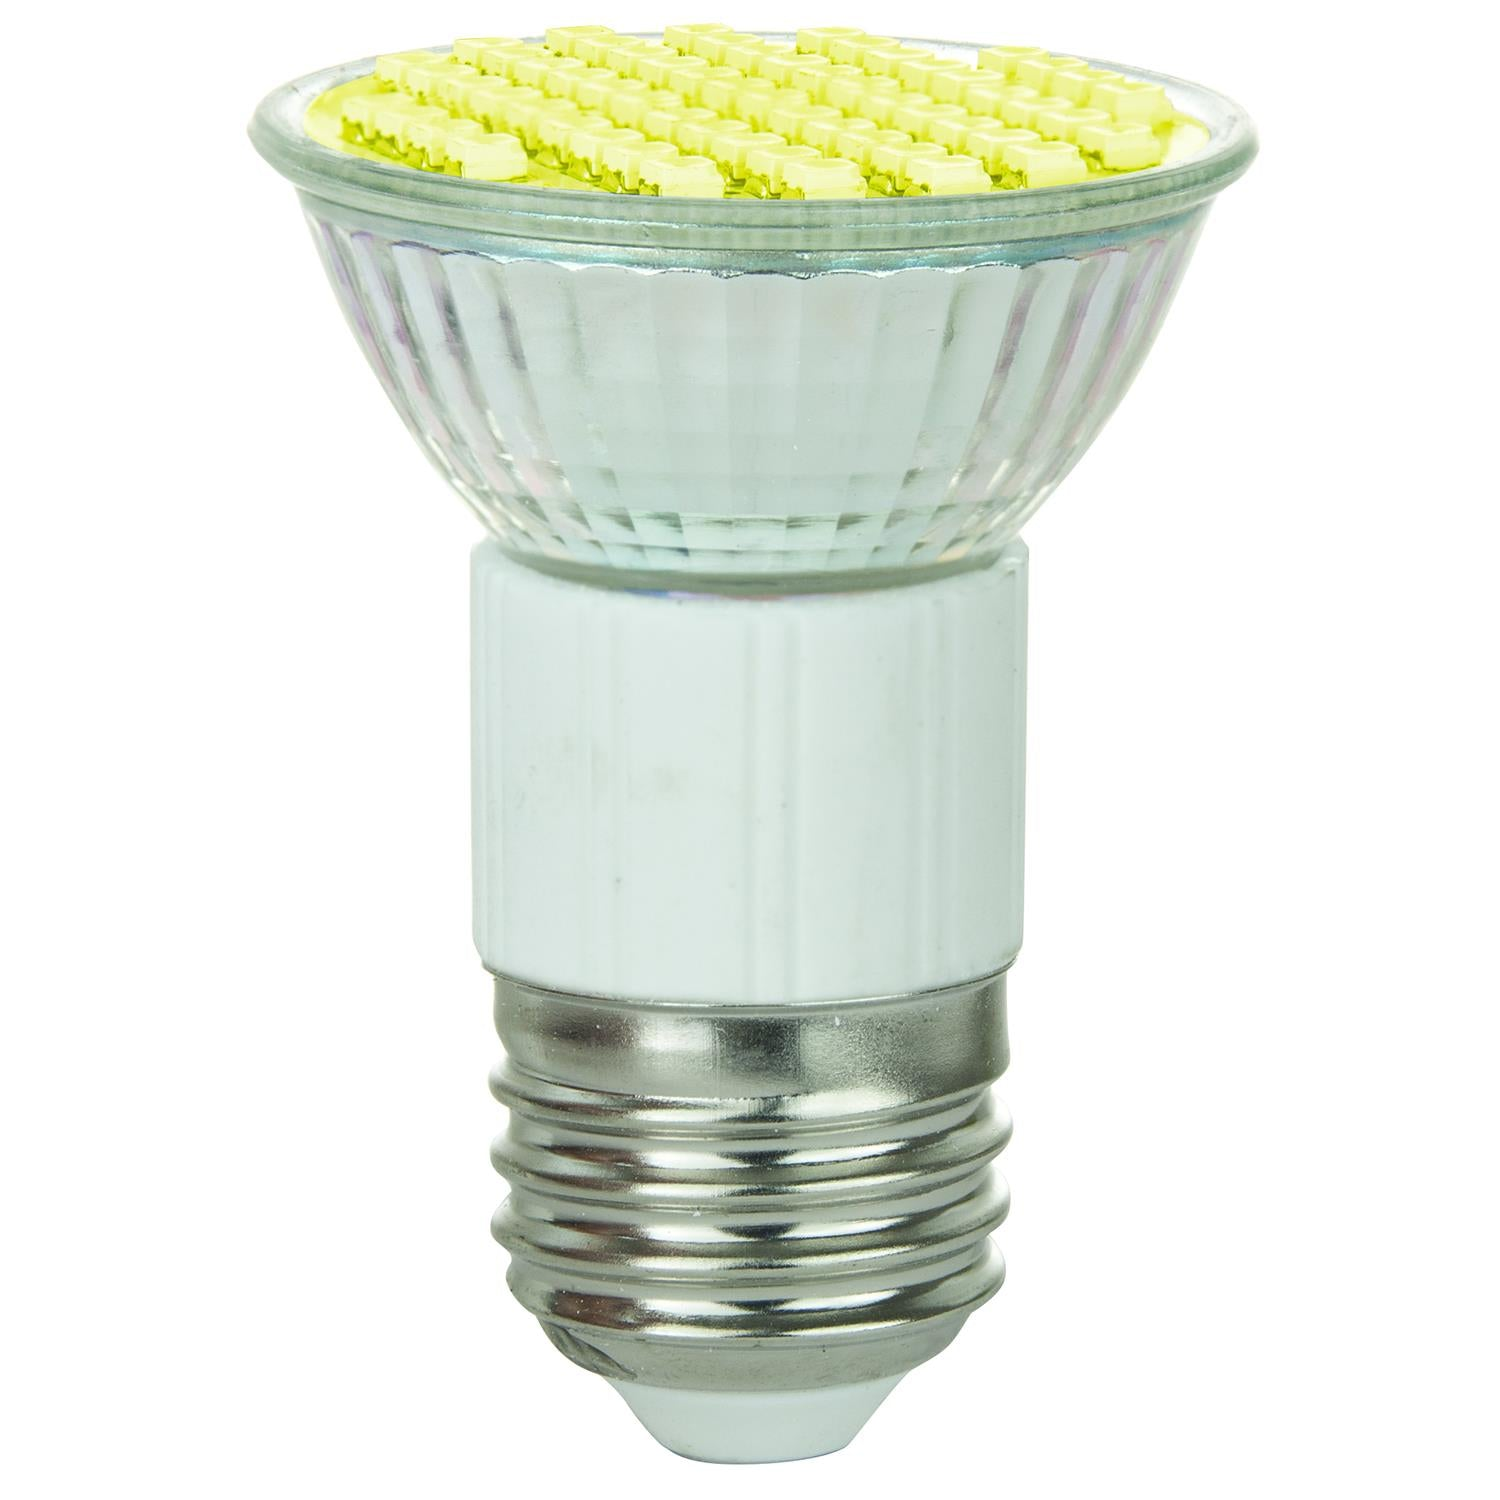 SUNLITE 80198-SU LED JDR MR16 Mini Reflector 2.8w Light Bulb Yellow